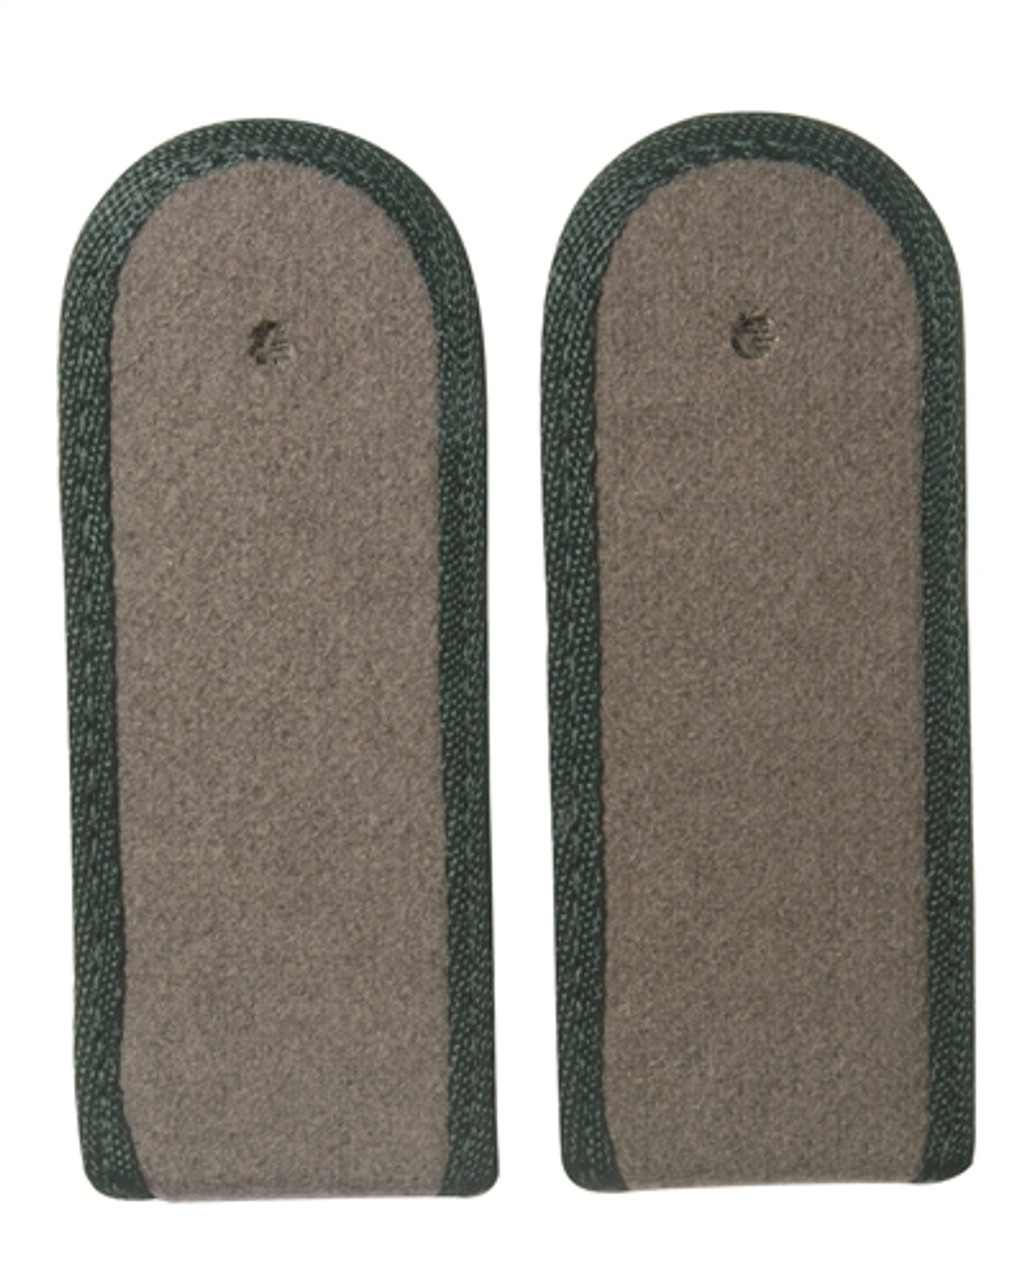 NVA Enlisted Shoulder Boards - Rear Services from Hessen Surplus